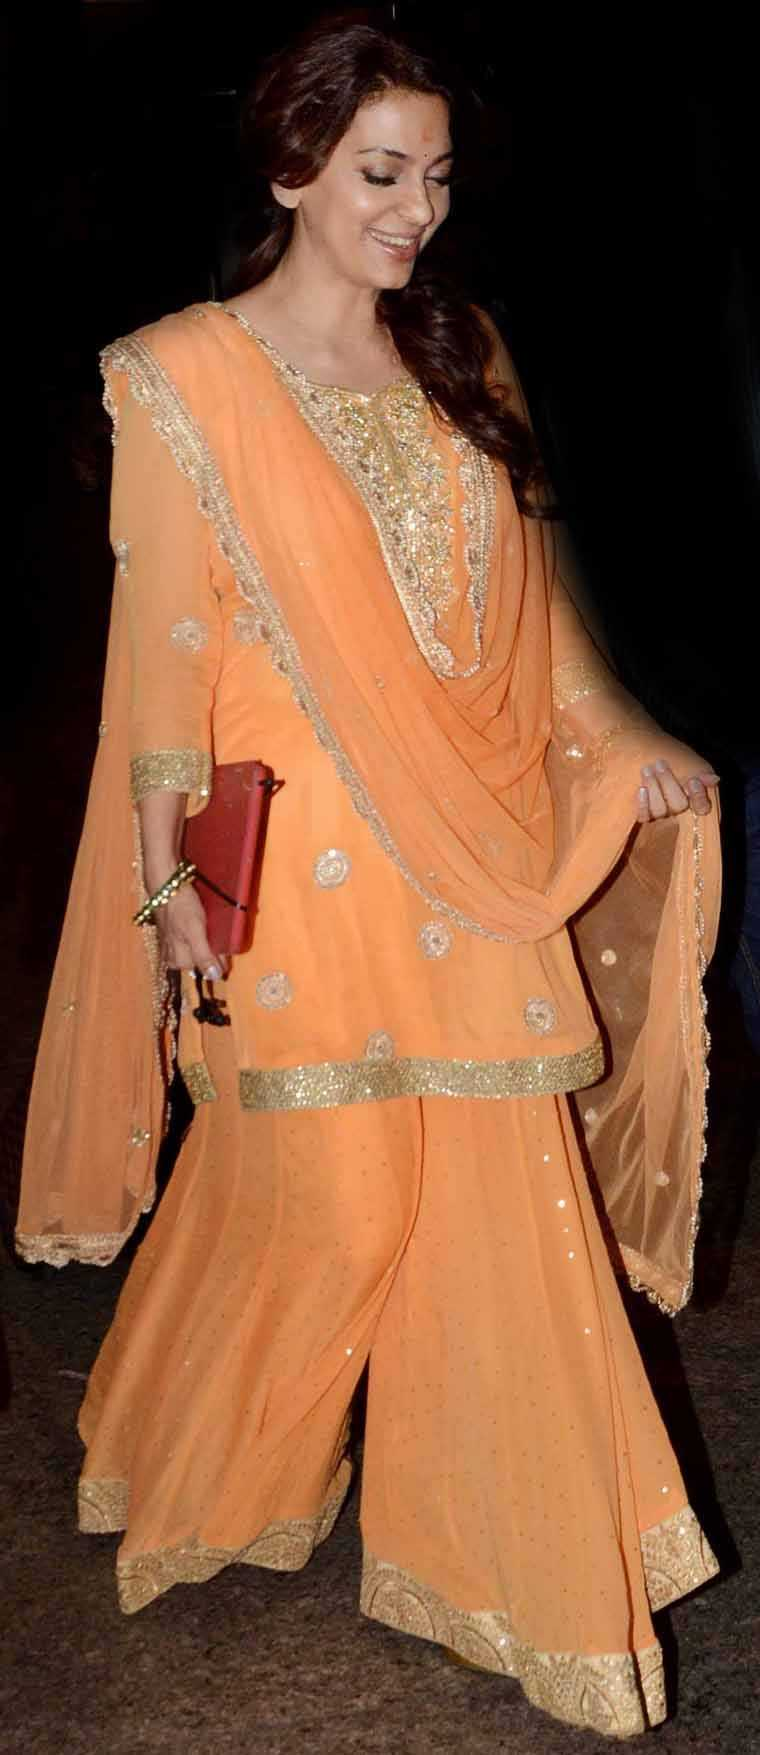 For the festivities this season, Juhi Chawla chose an ensemble from Bhumika Grover's festive collection.